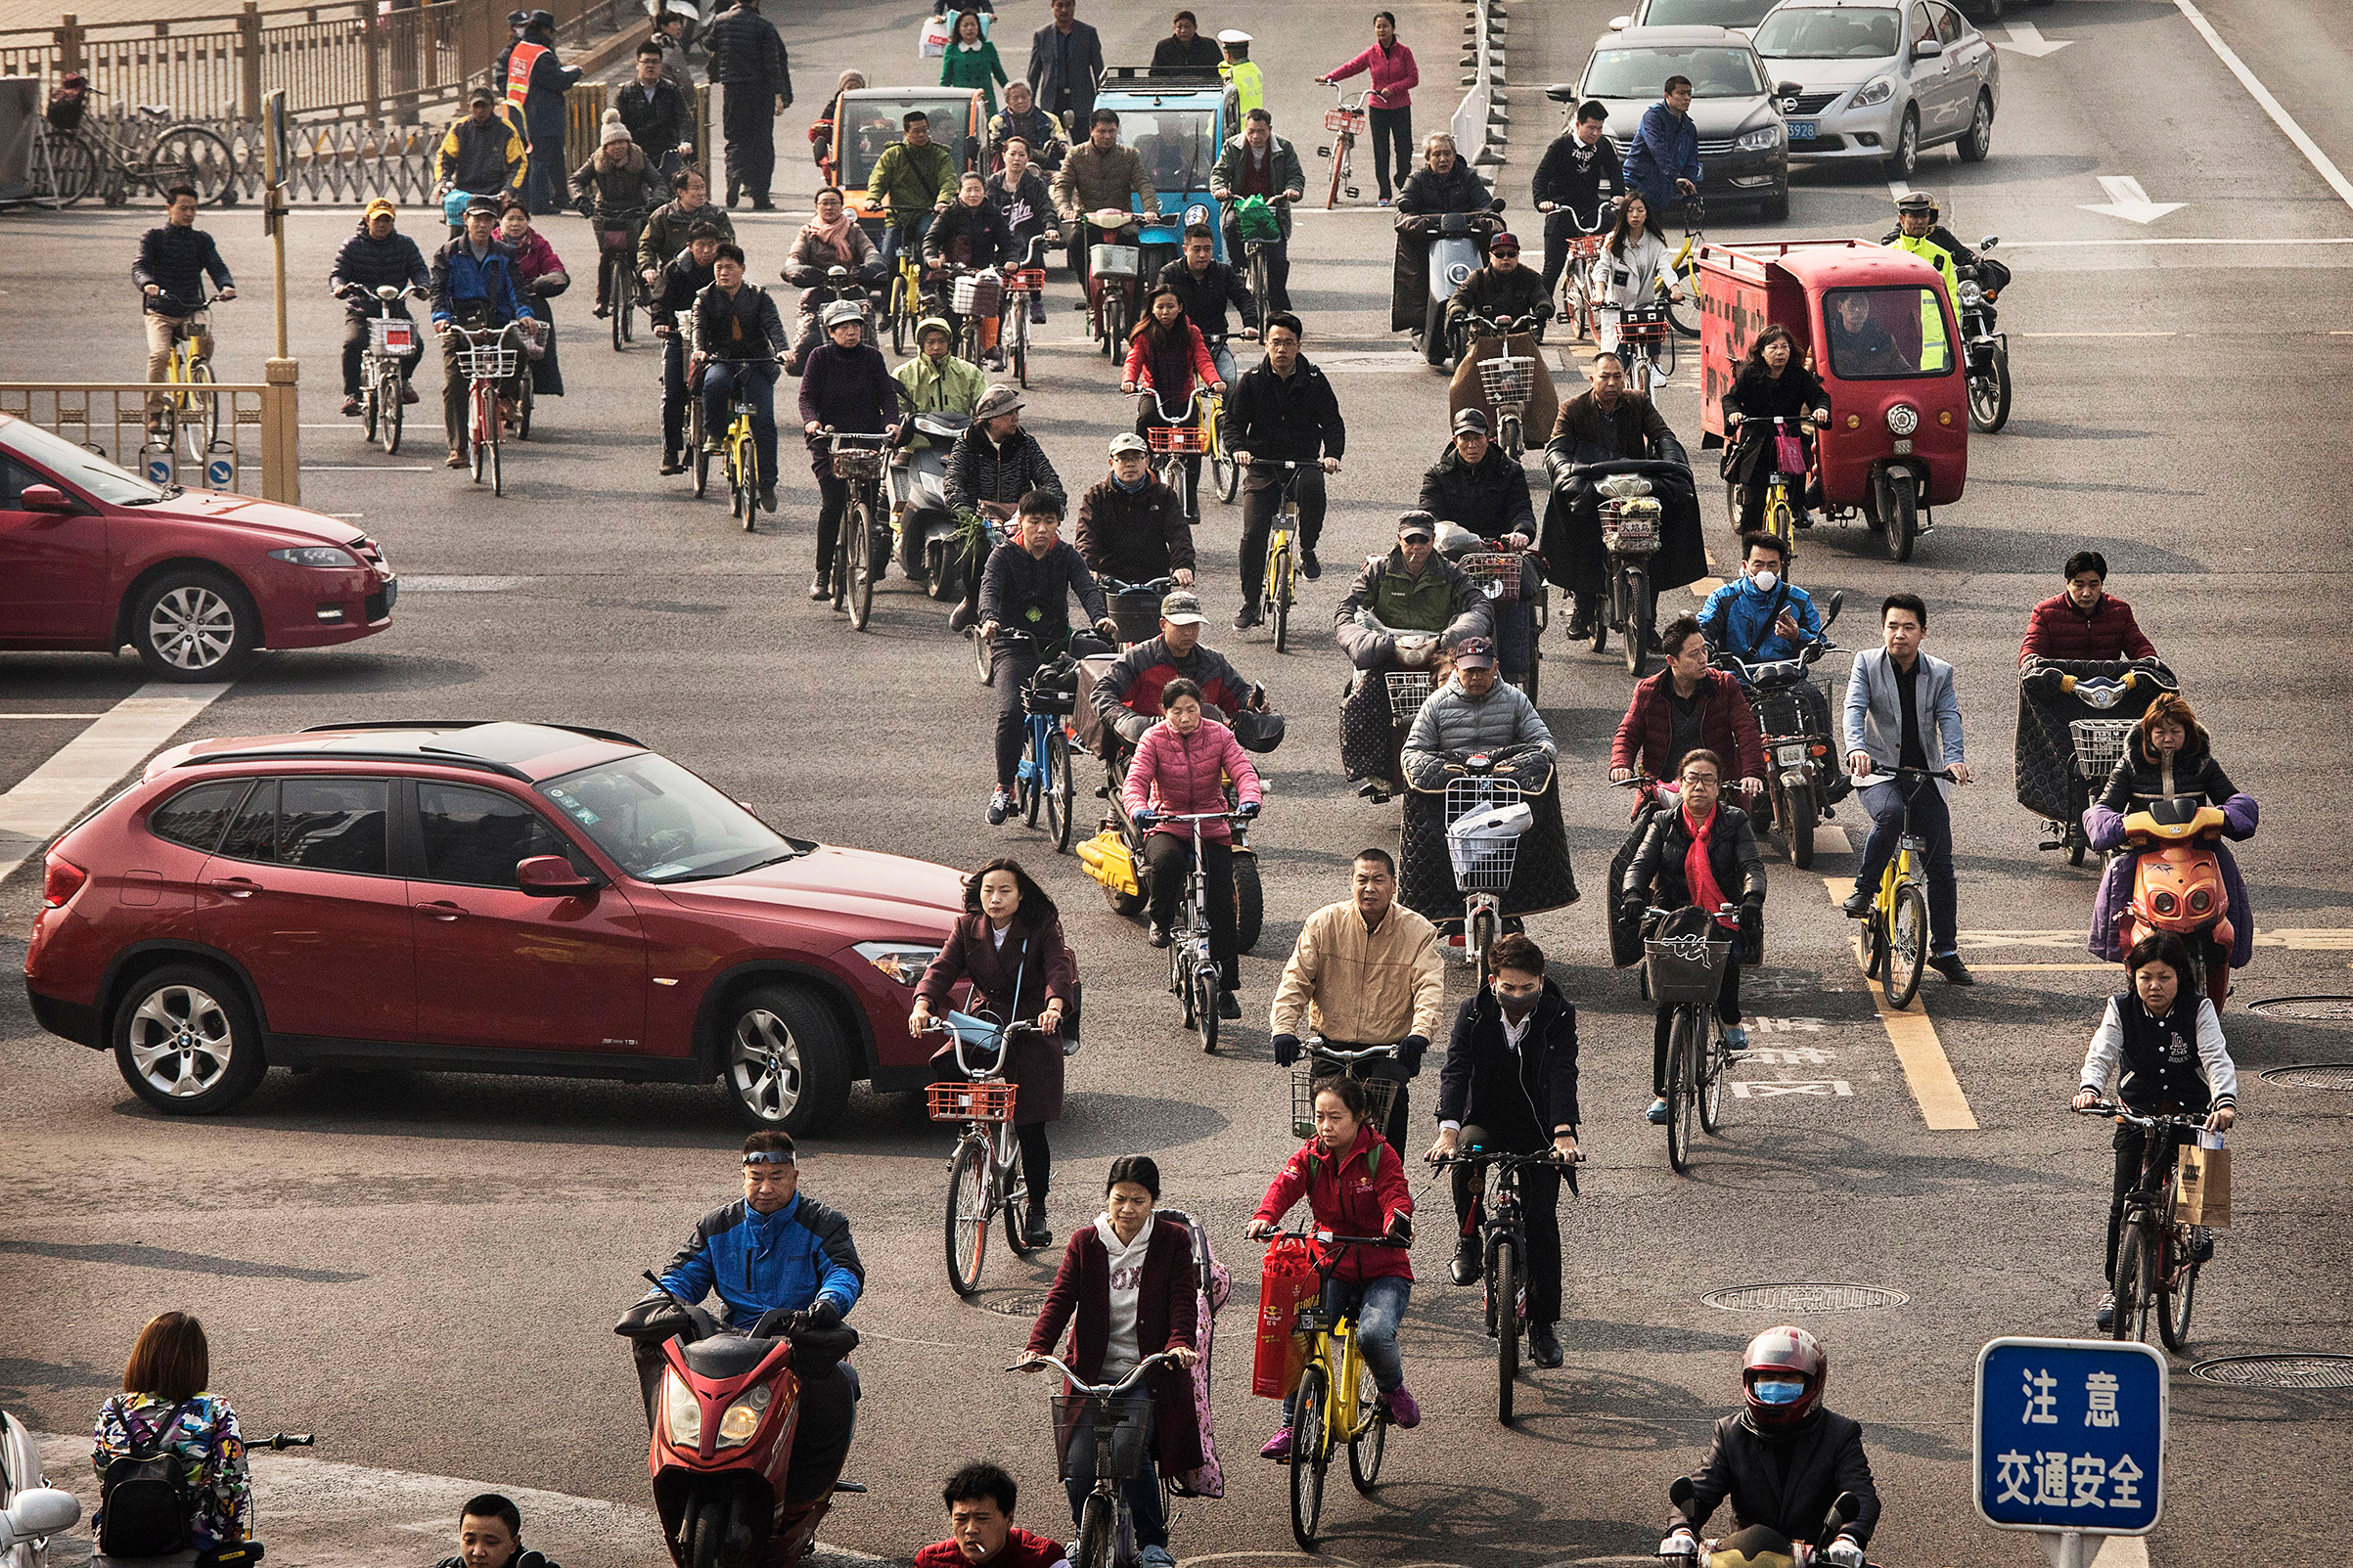 Chinese commuters ride bike shares and other modes of transport in the bicycle lane during rush hour in Beijing on March 29, 2017.